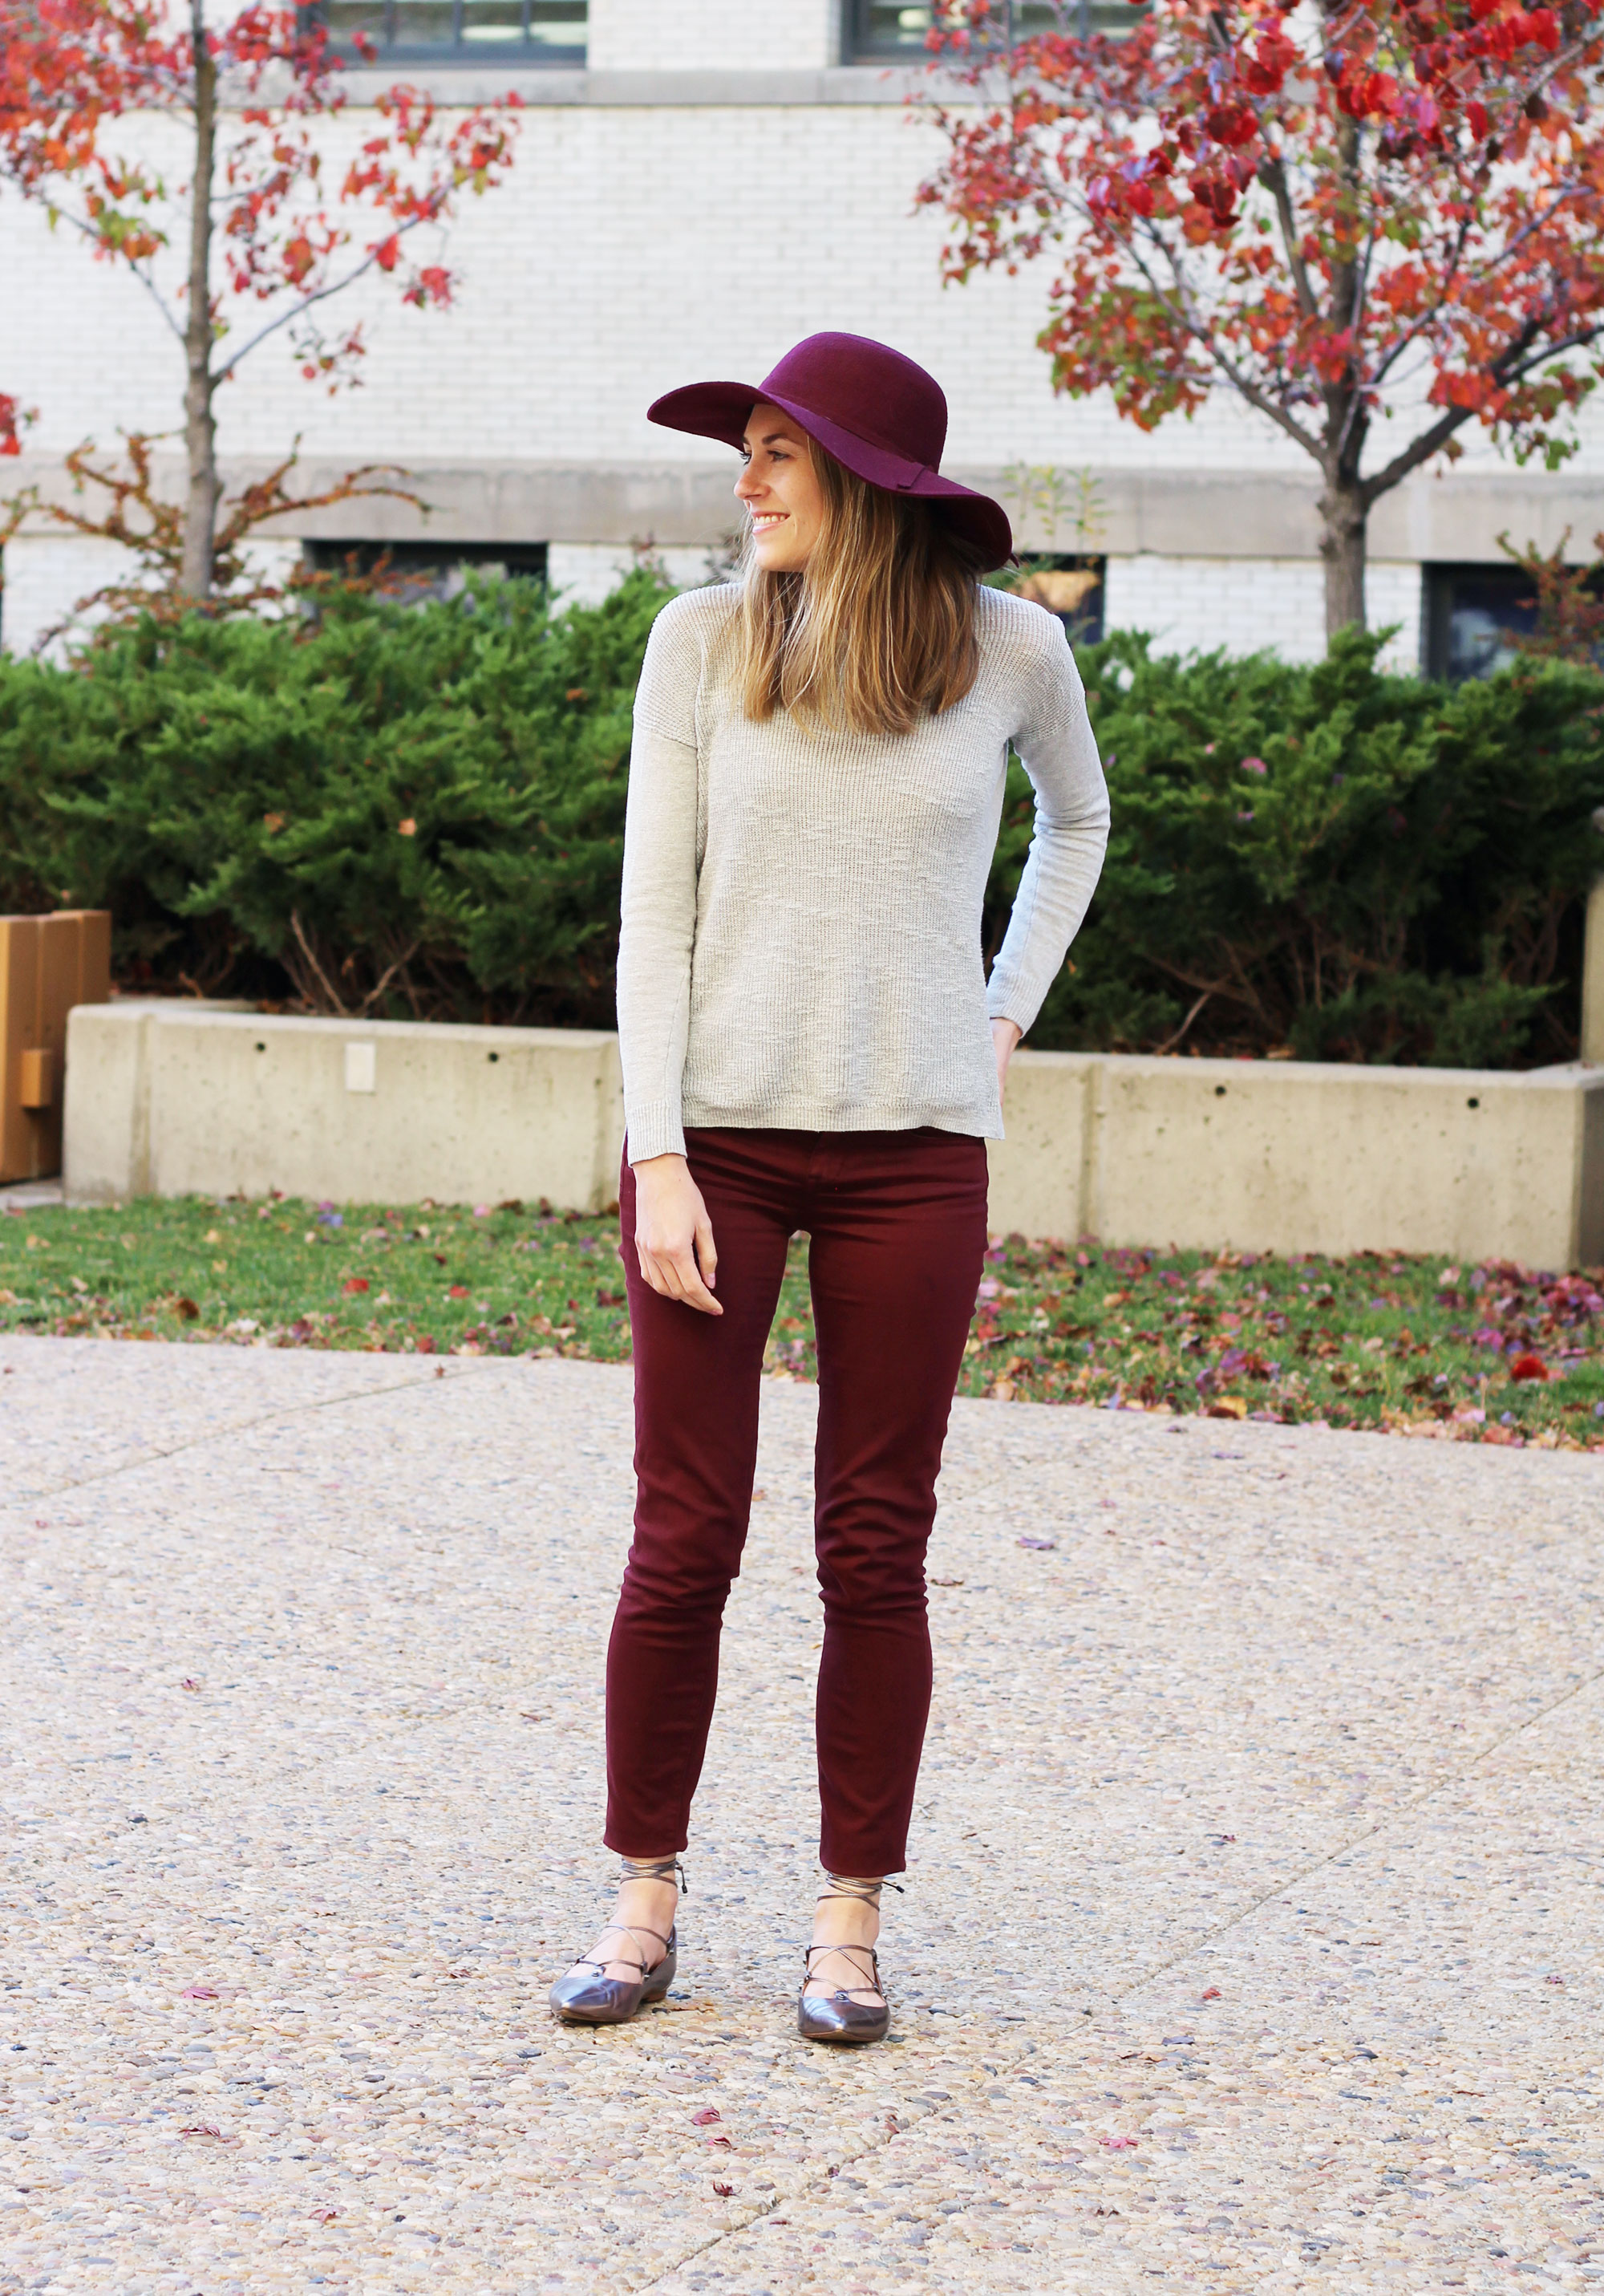 Burgundy wool hat outfit with grey sweater, burgundy pants, lace-up flats — Cotton Cashmere Cat Hair